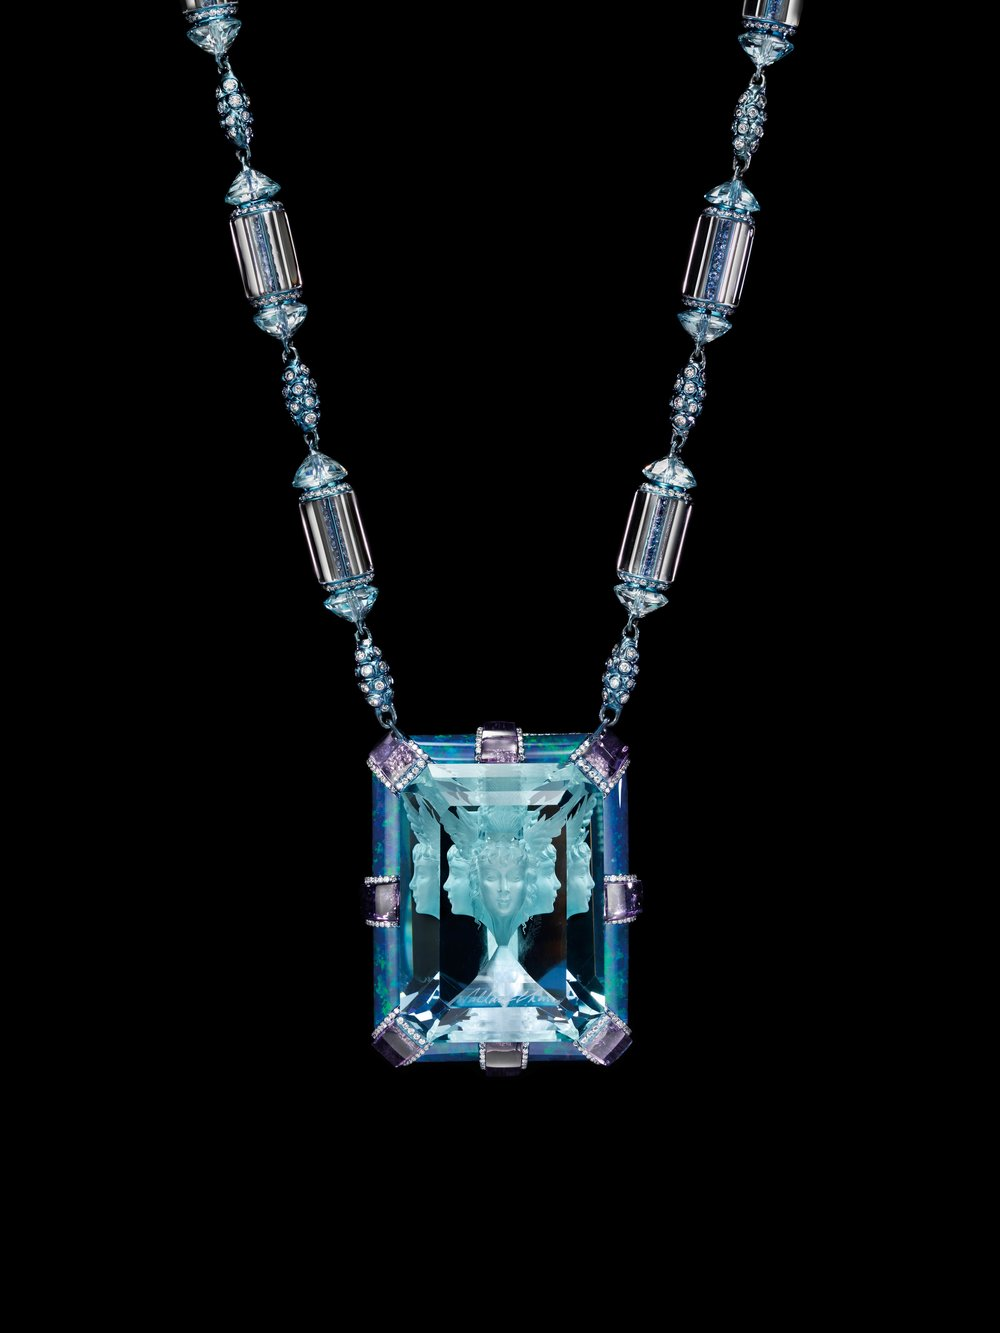 Necklace Now and Always   Aquamarine (Wallace Cut) 135.4ct, Amethyst, Diamond, Blue Topaz, Sapphire, Opal. This majestic jewellery piece is themed on the world-renowned Wallace Cut, invented by Wallace Chan in 1987. The face looking at the viewer is the actual carving. The other four faces are reflections in the facets.